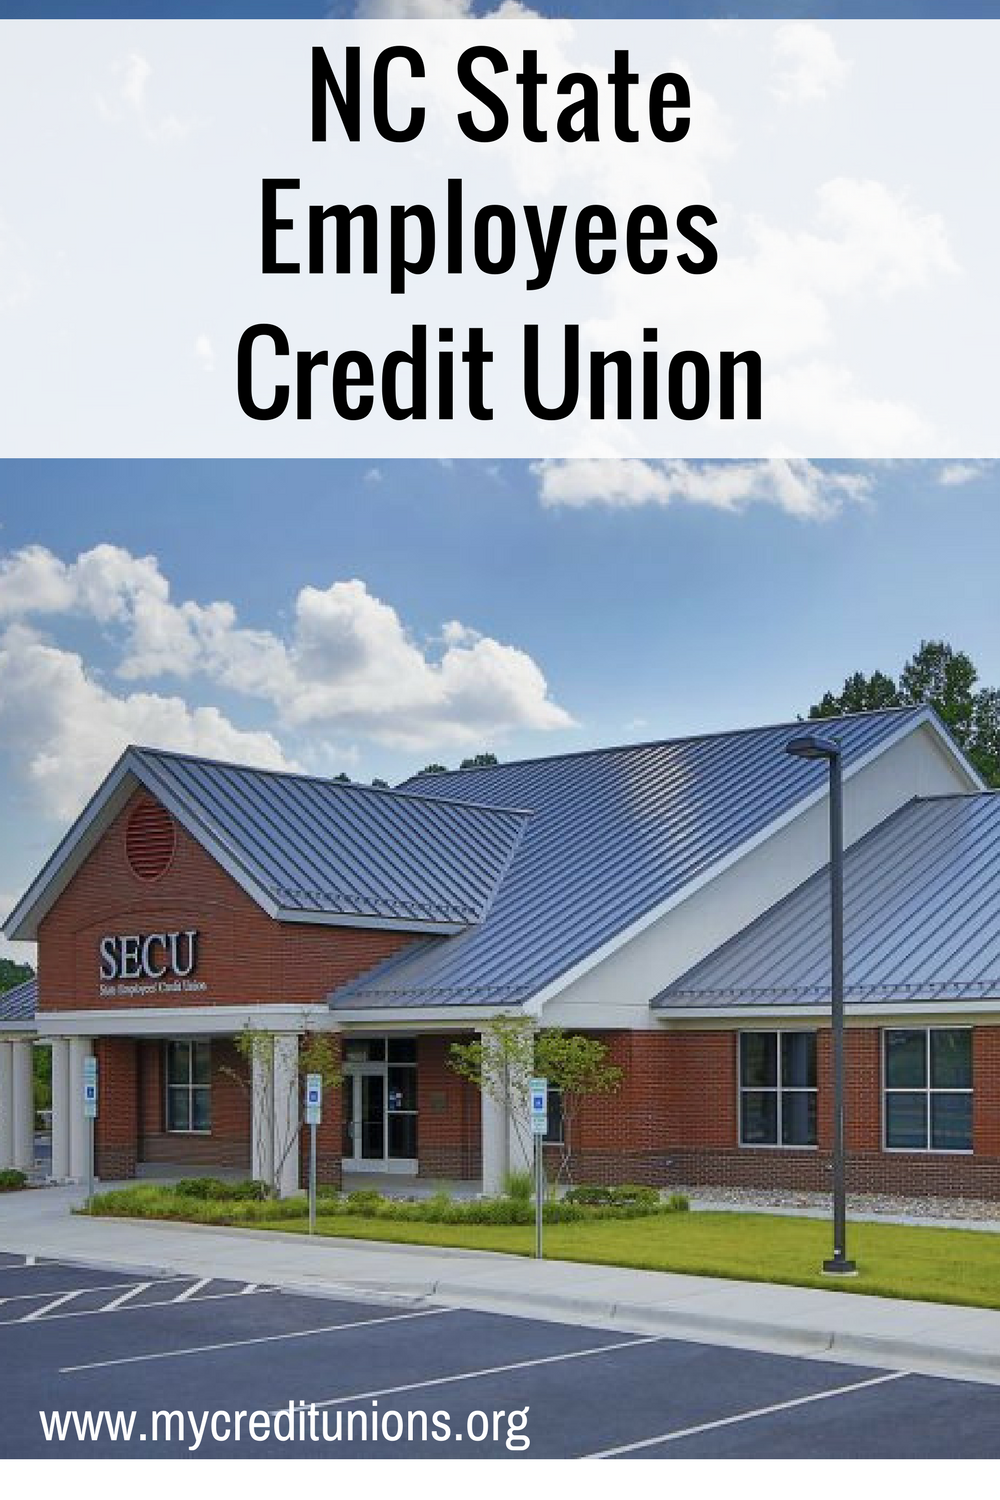 State Employees Credit Union NC